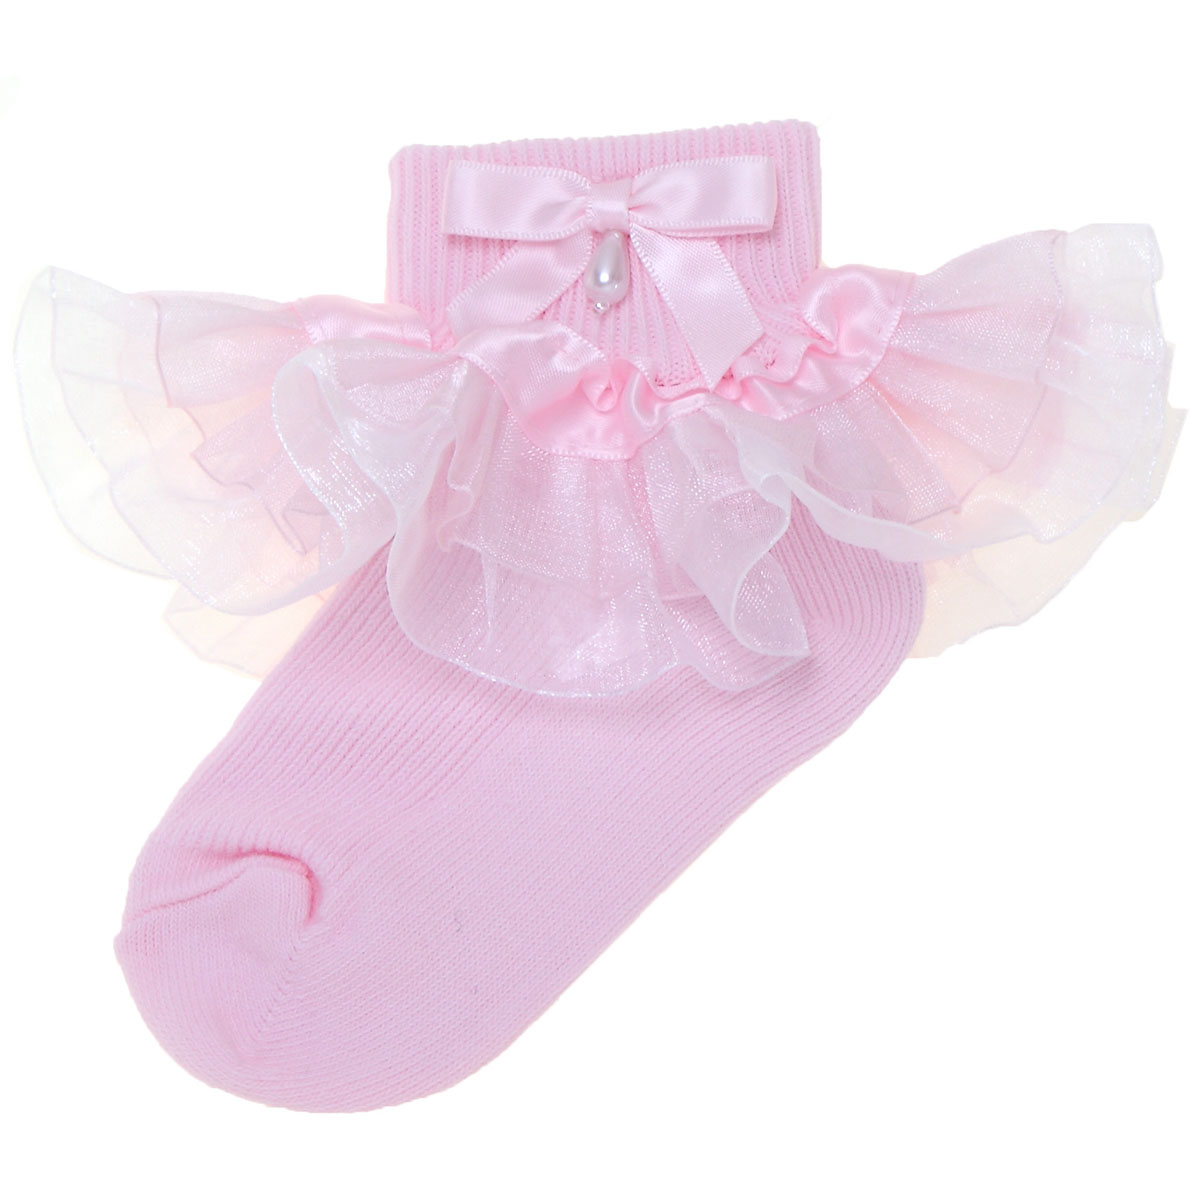 You searched for: frilly baby socks! Etsy is the home to thousands of handmade, vintage, and one-of-a-kind products and gifts related to your search. No matter what you're looking for or where you are in the world, our global marketplace of sellers can help you find unique and affordable options. Let's get started!